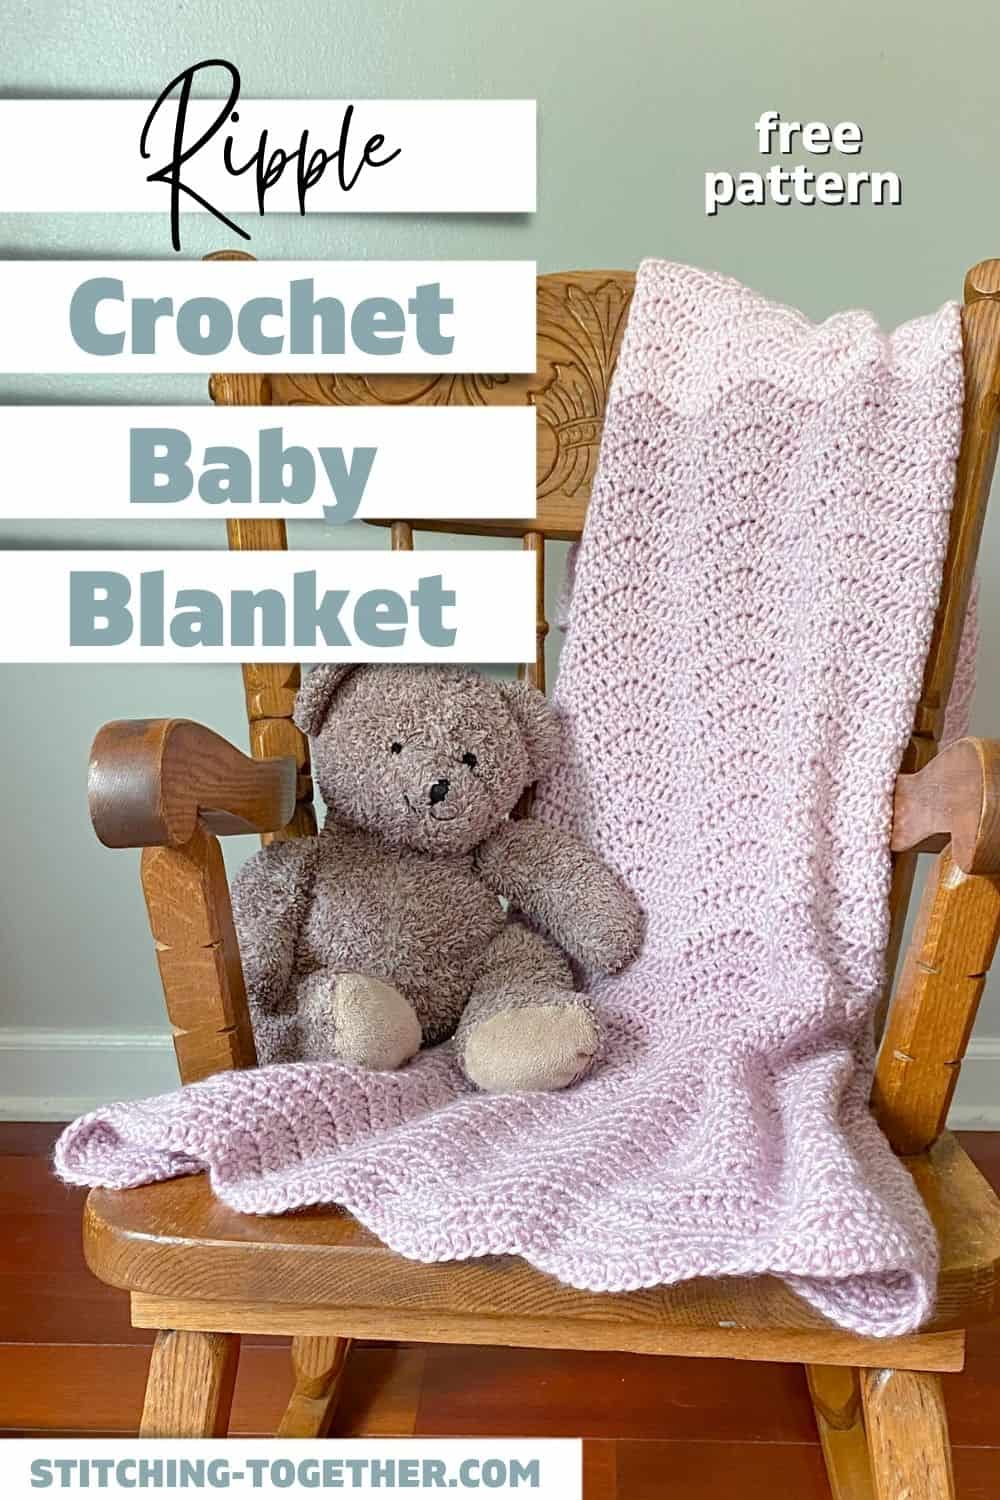 pin of ripple baby afghan on a chair with a stuffed bear